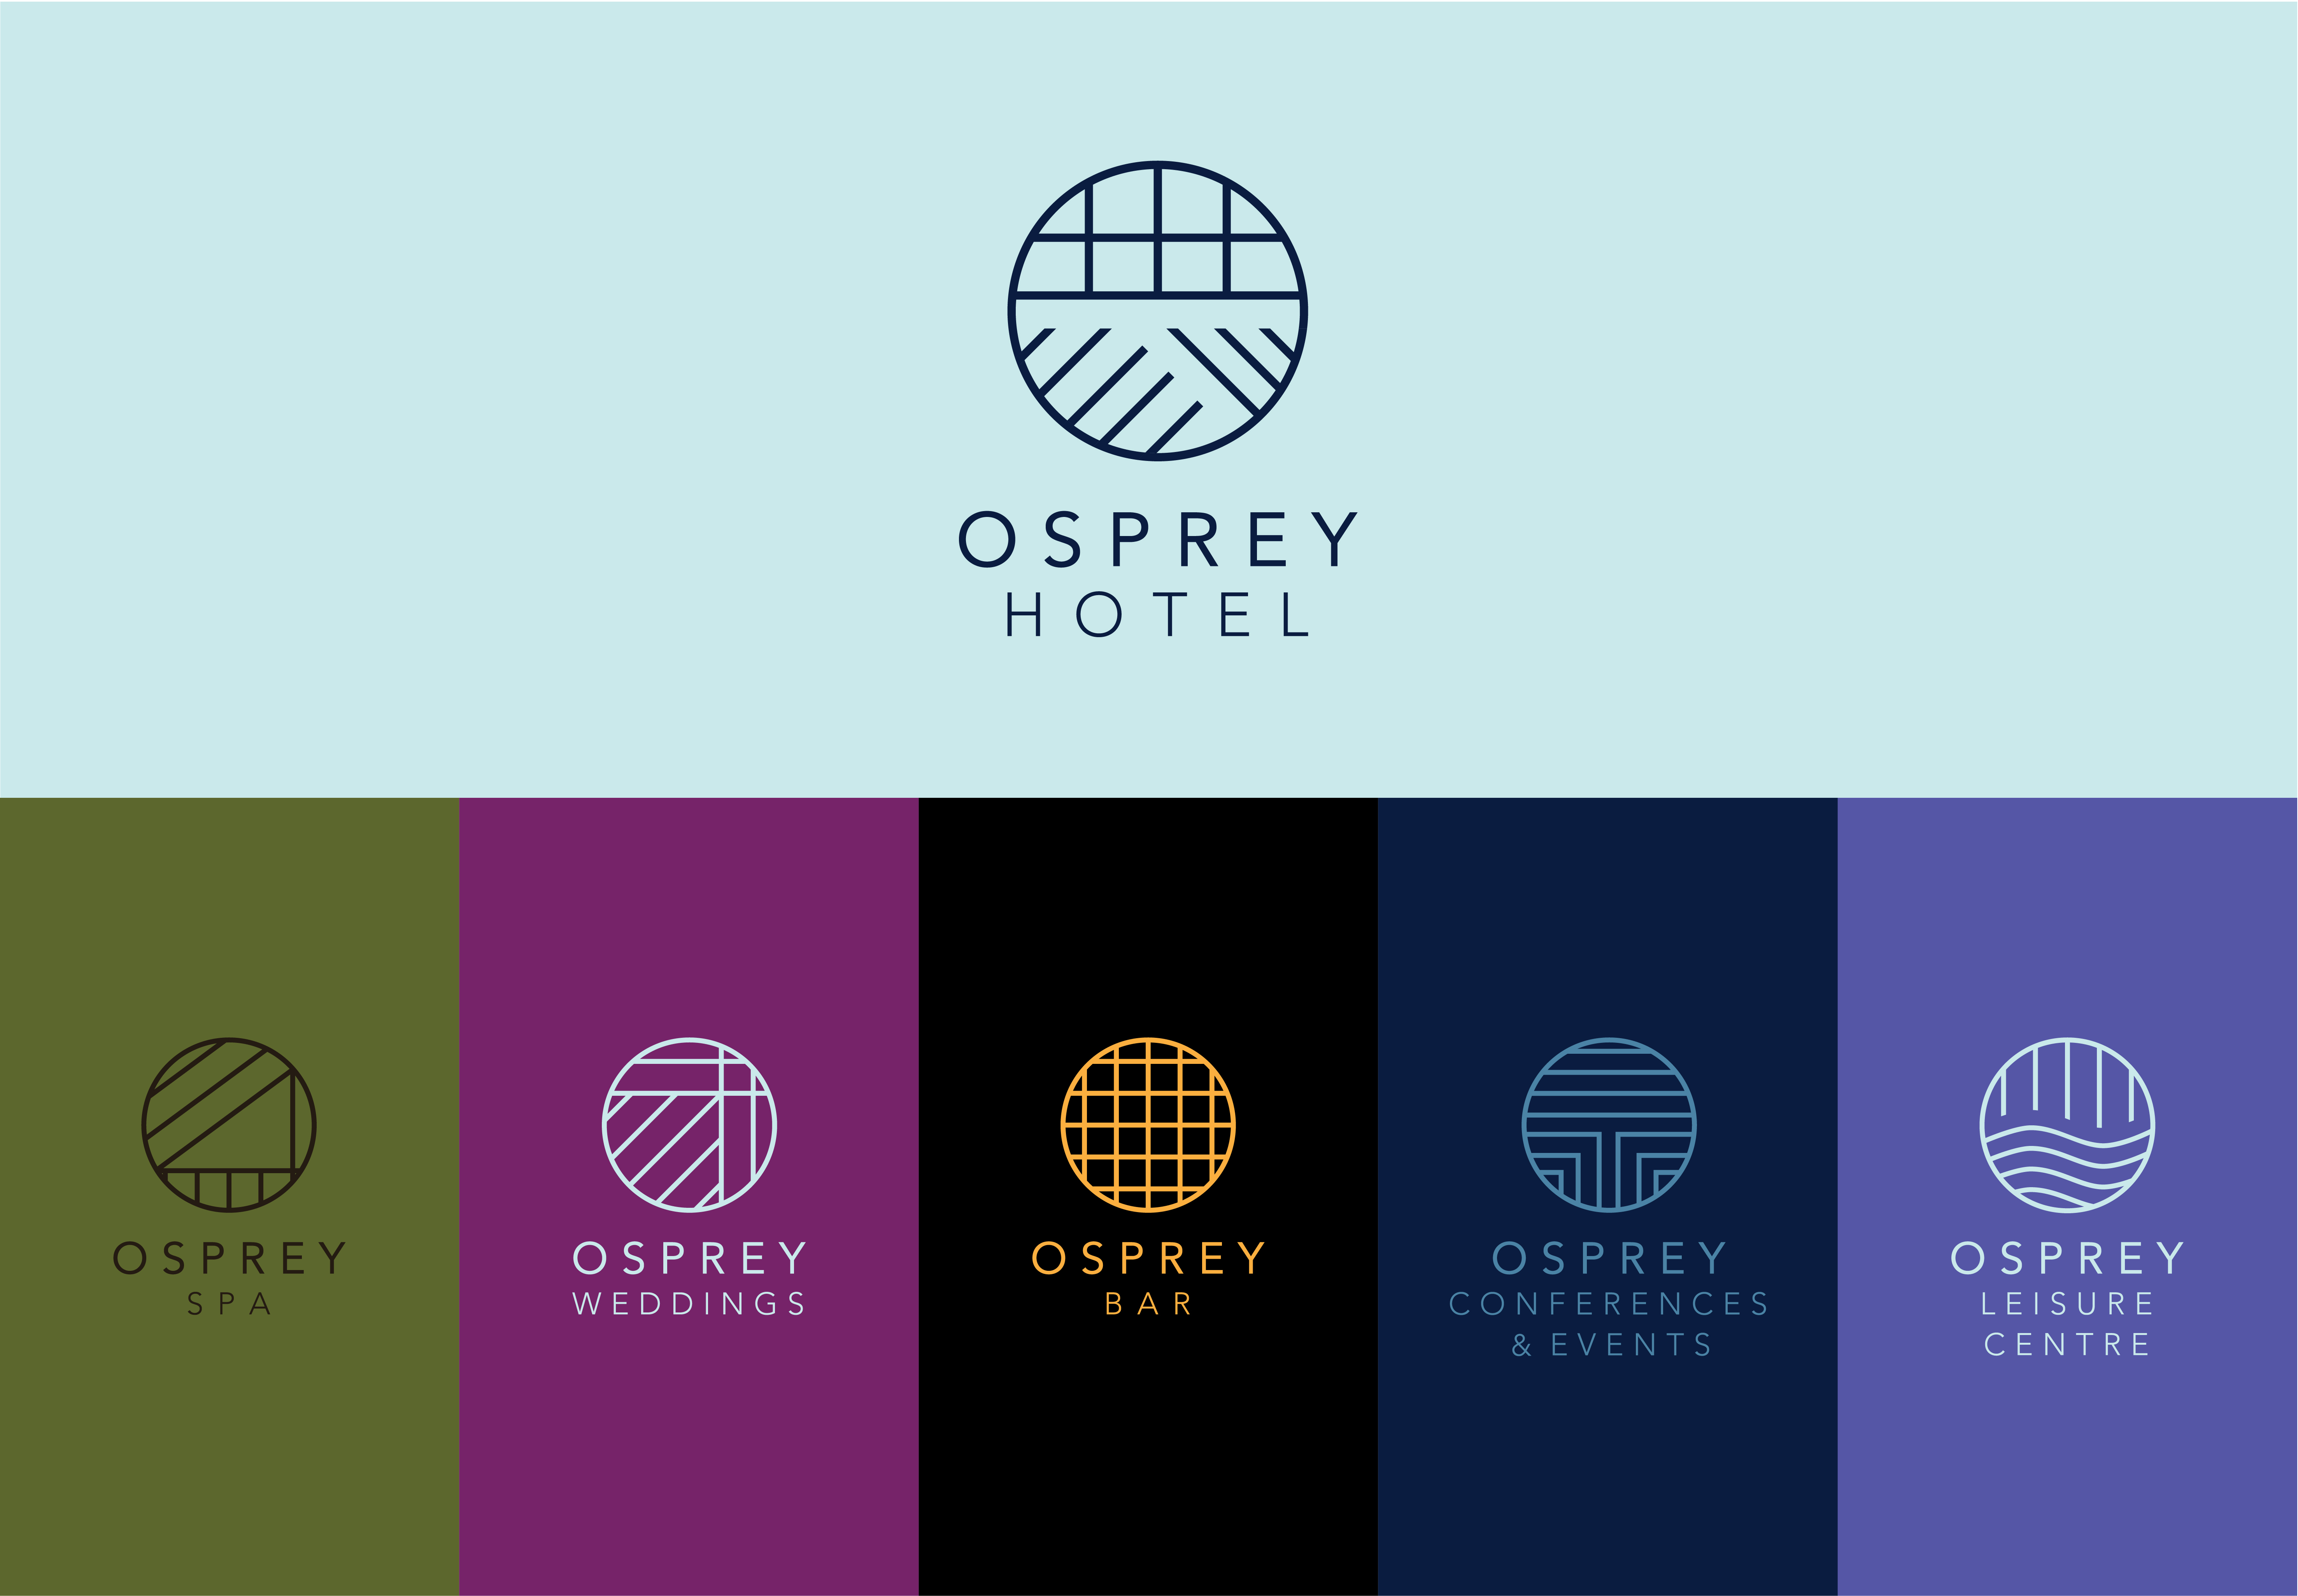 Cover image: Osprey Hotel